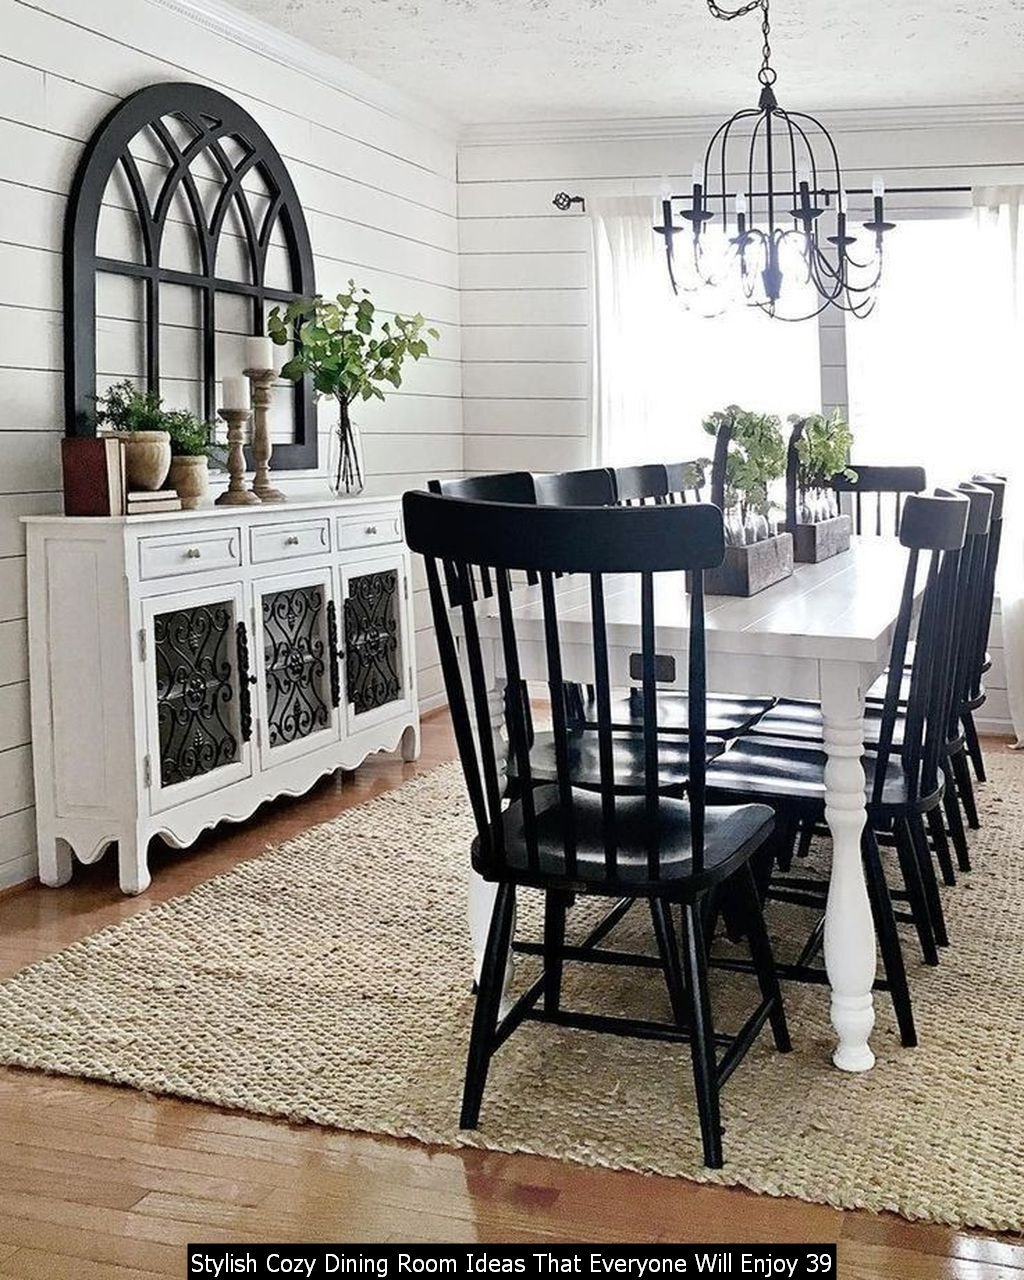 Stylish Cozy Dining Room Ideas That Everyone Will Enjoy 39